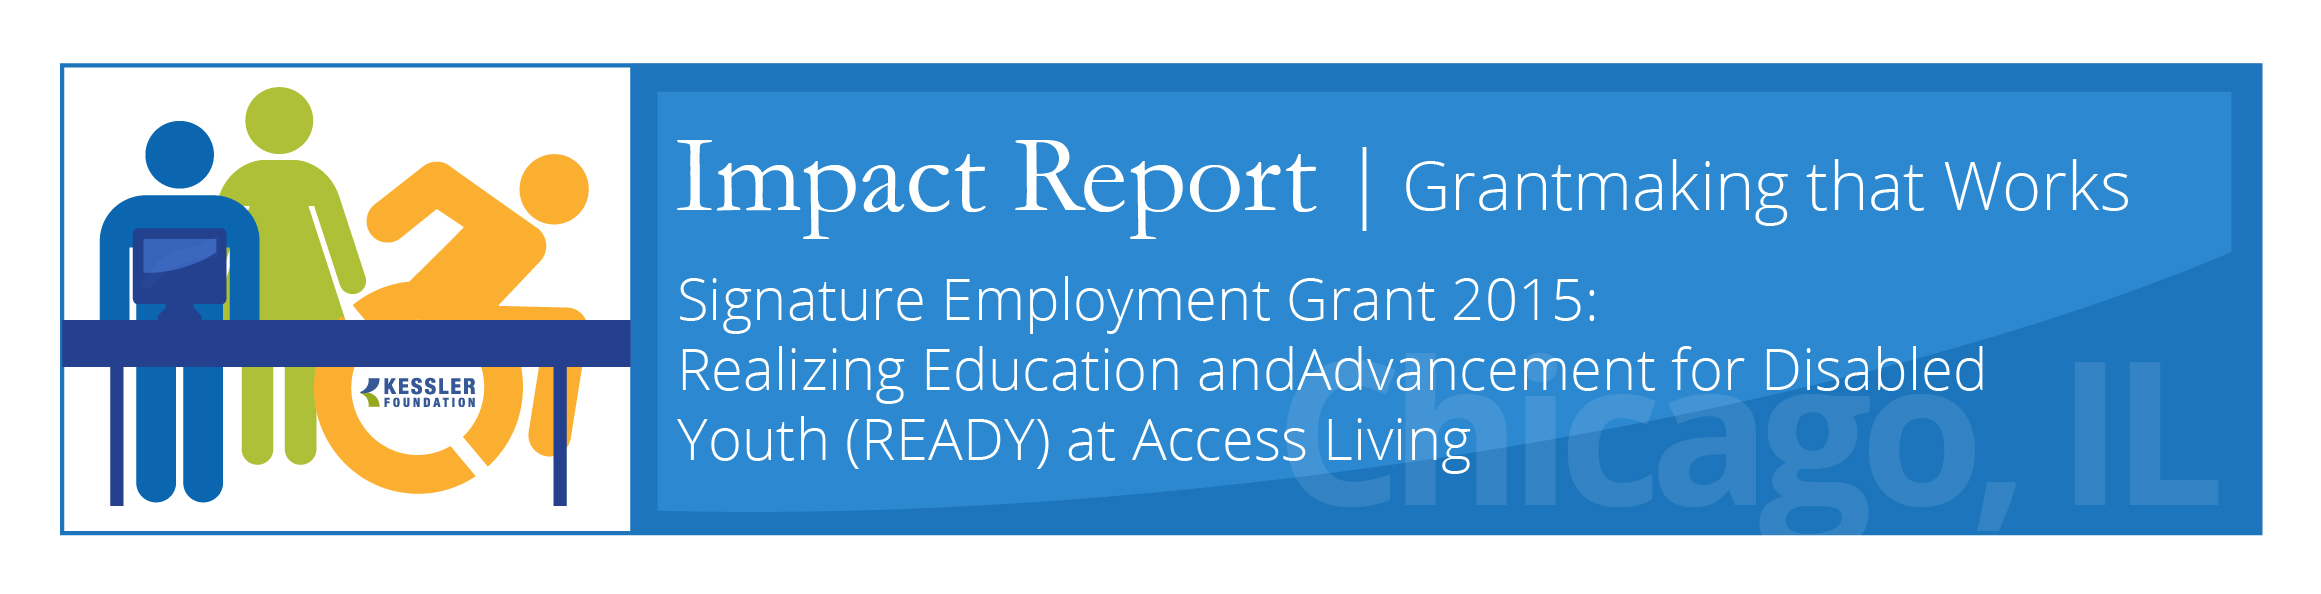 impact report grantmaking that works